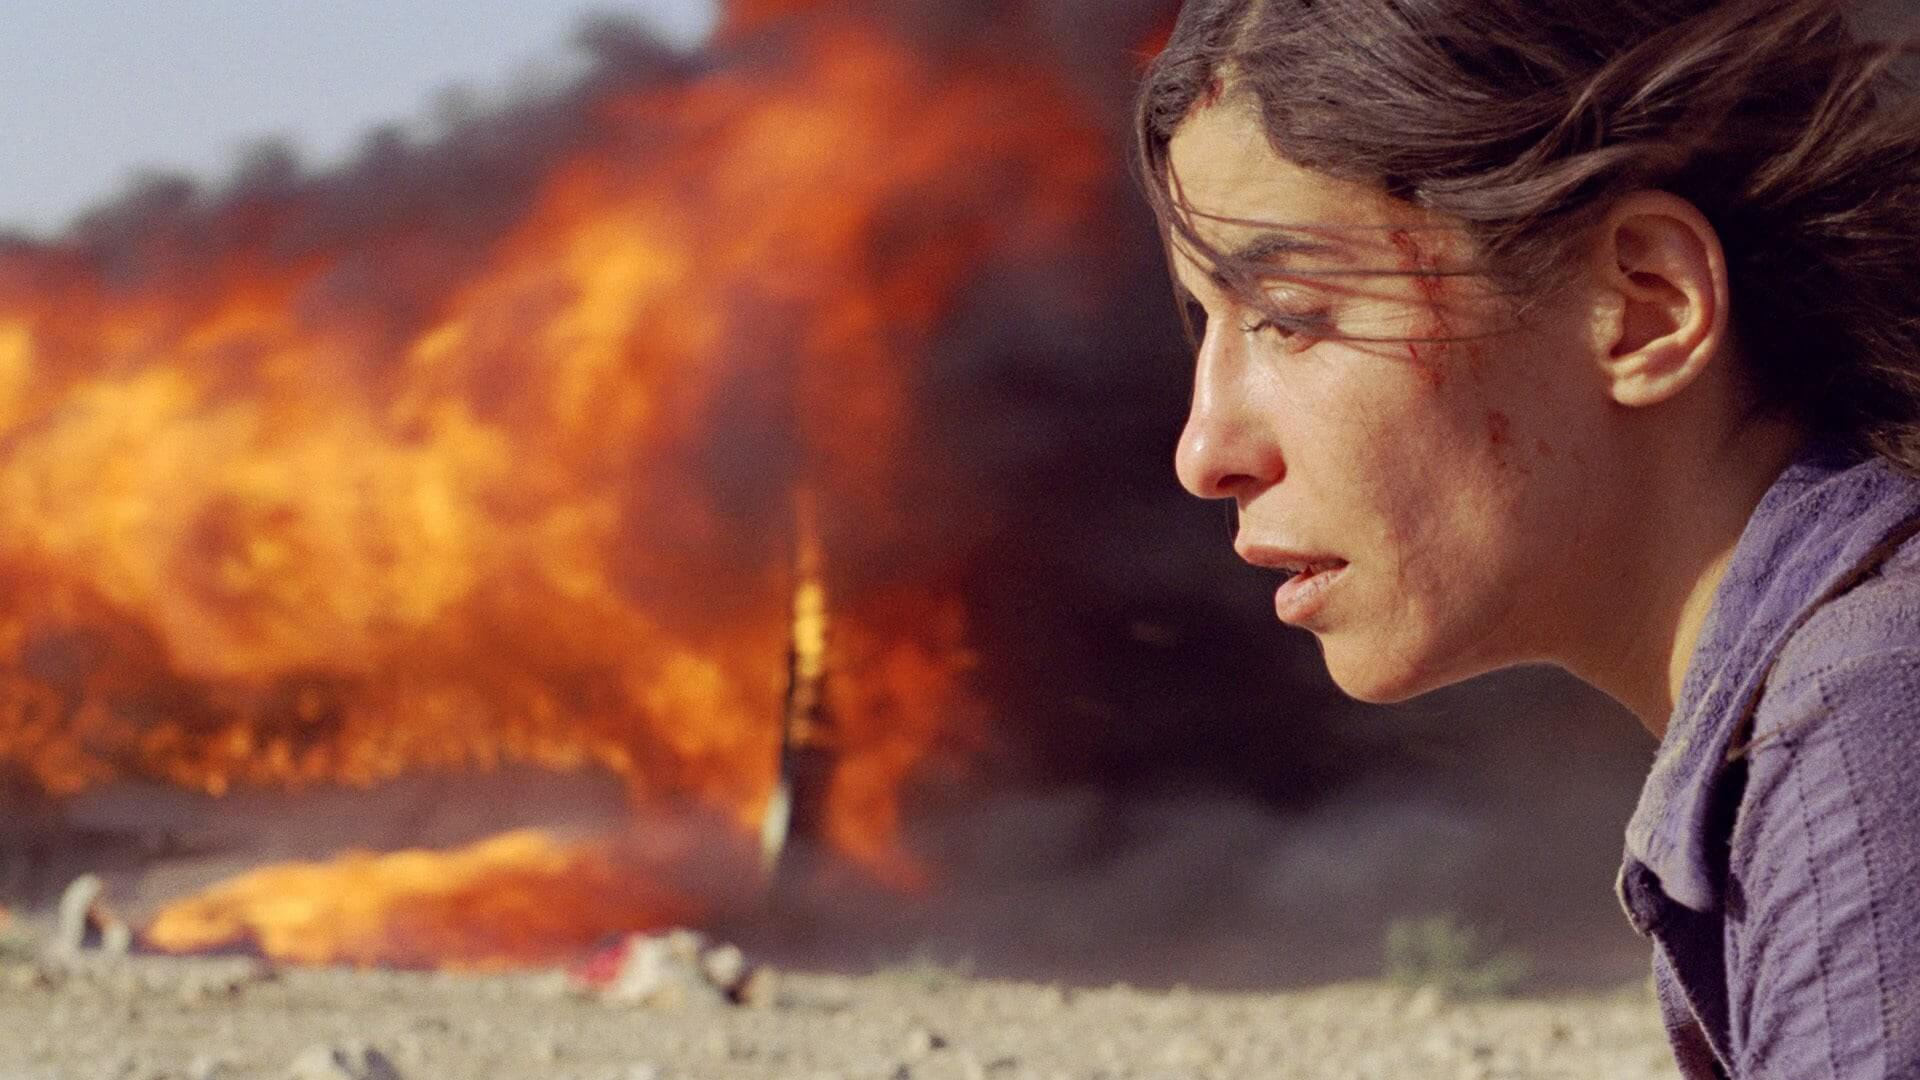 incendies 2010 denis villeneuve